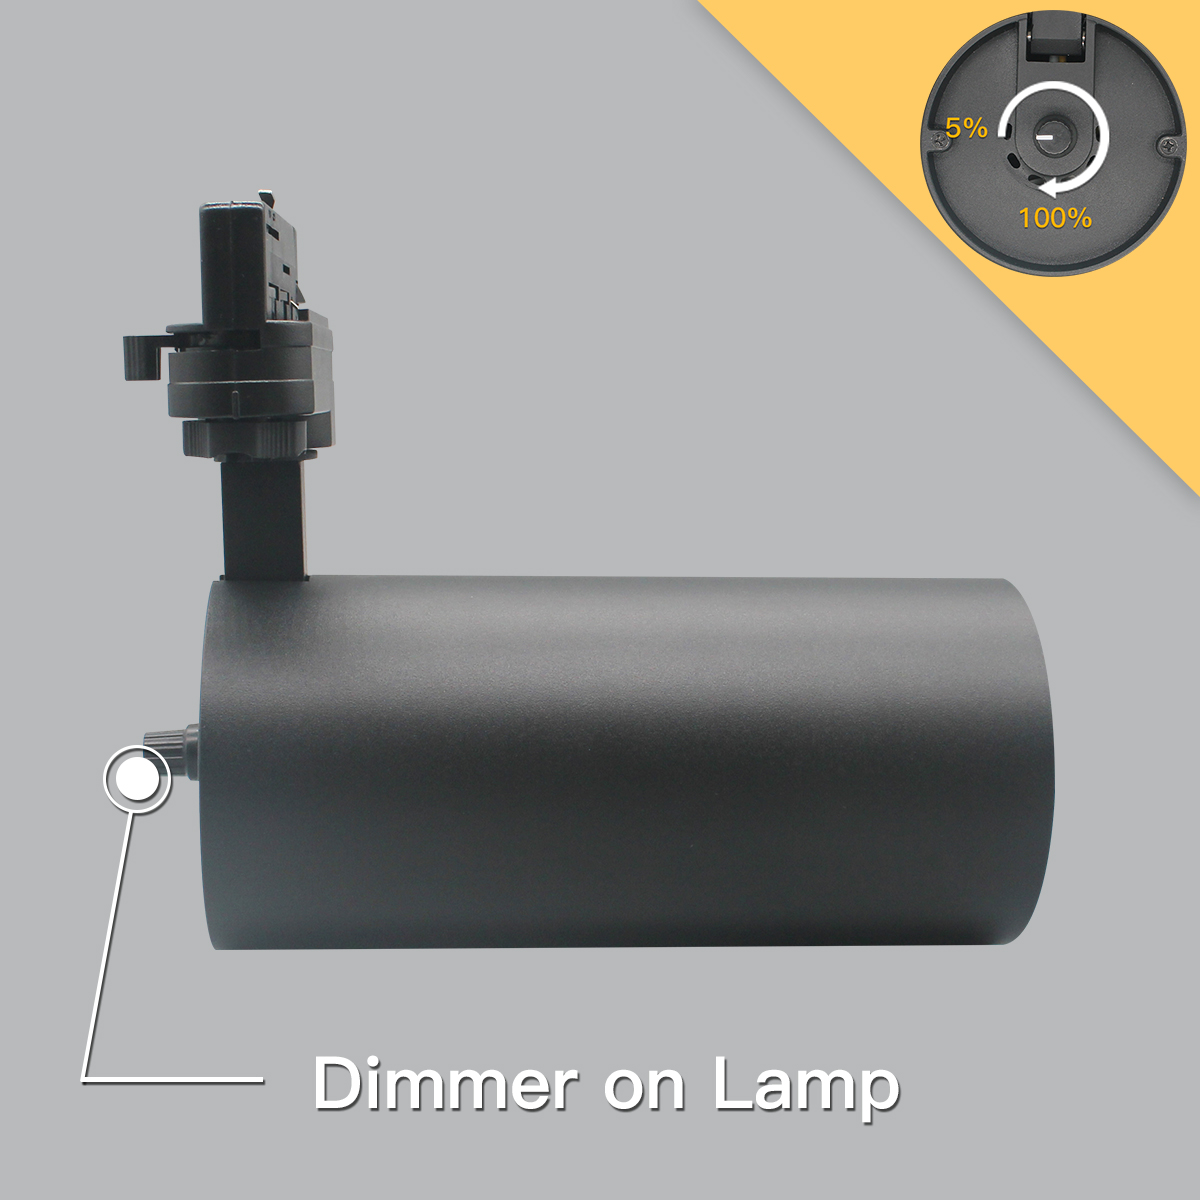 TLG Dimmer on Lamp